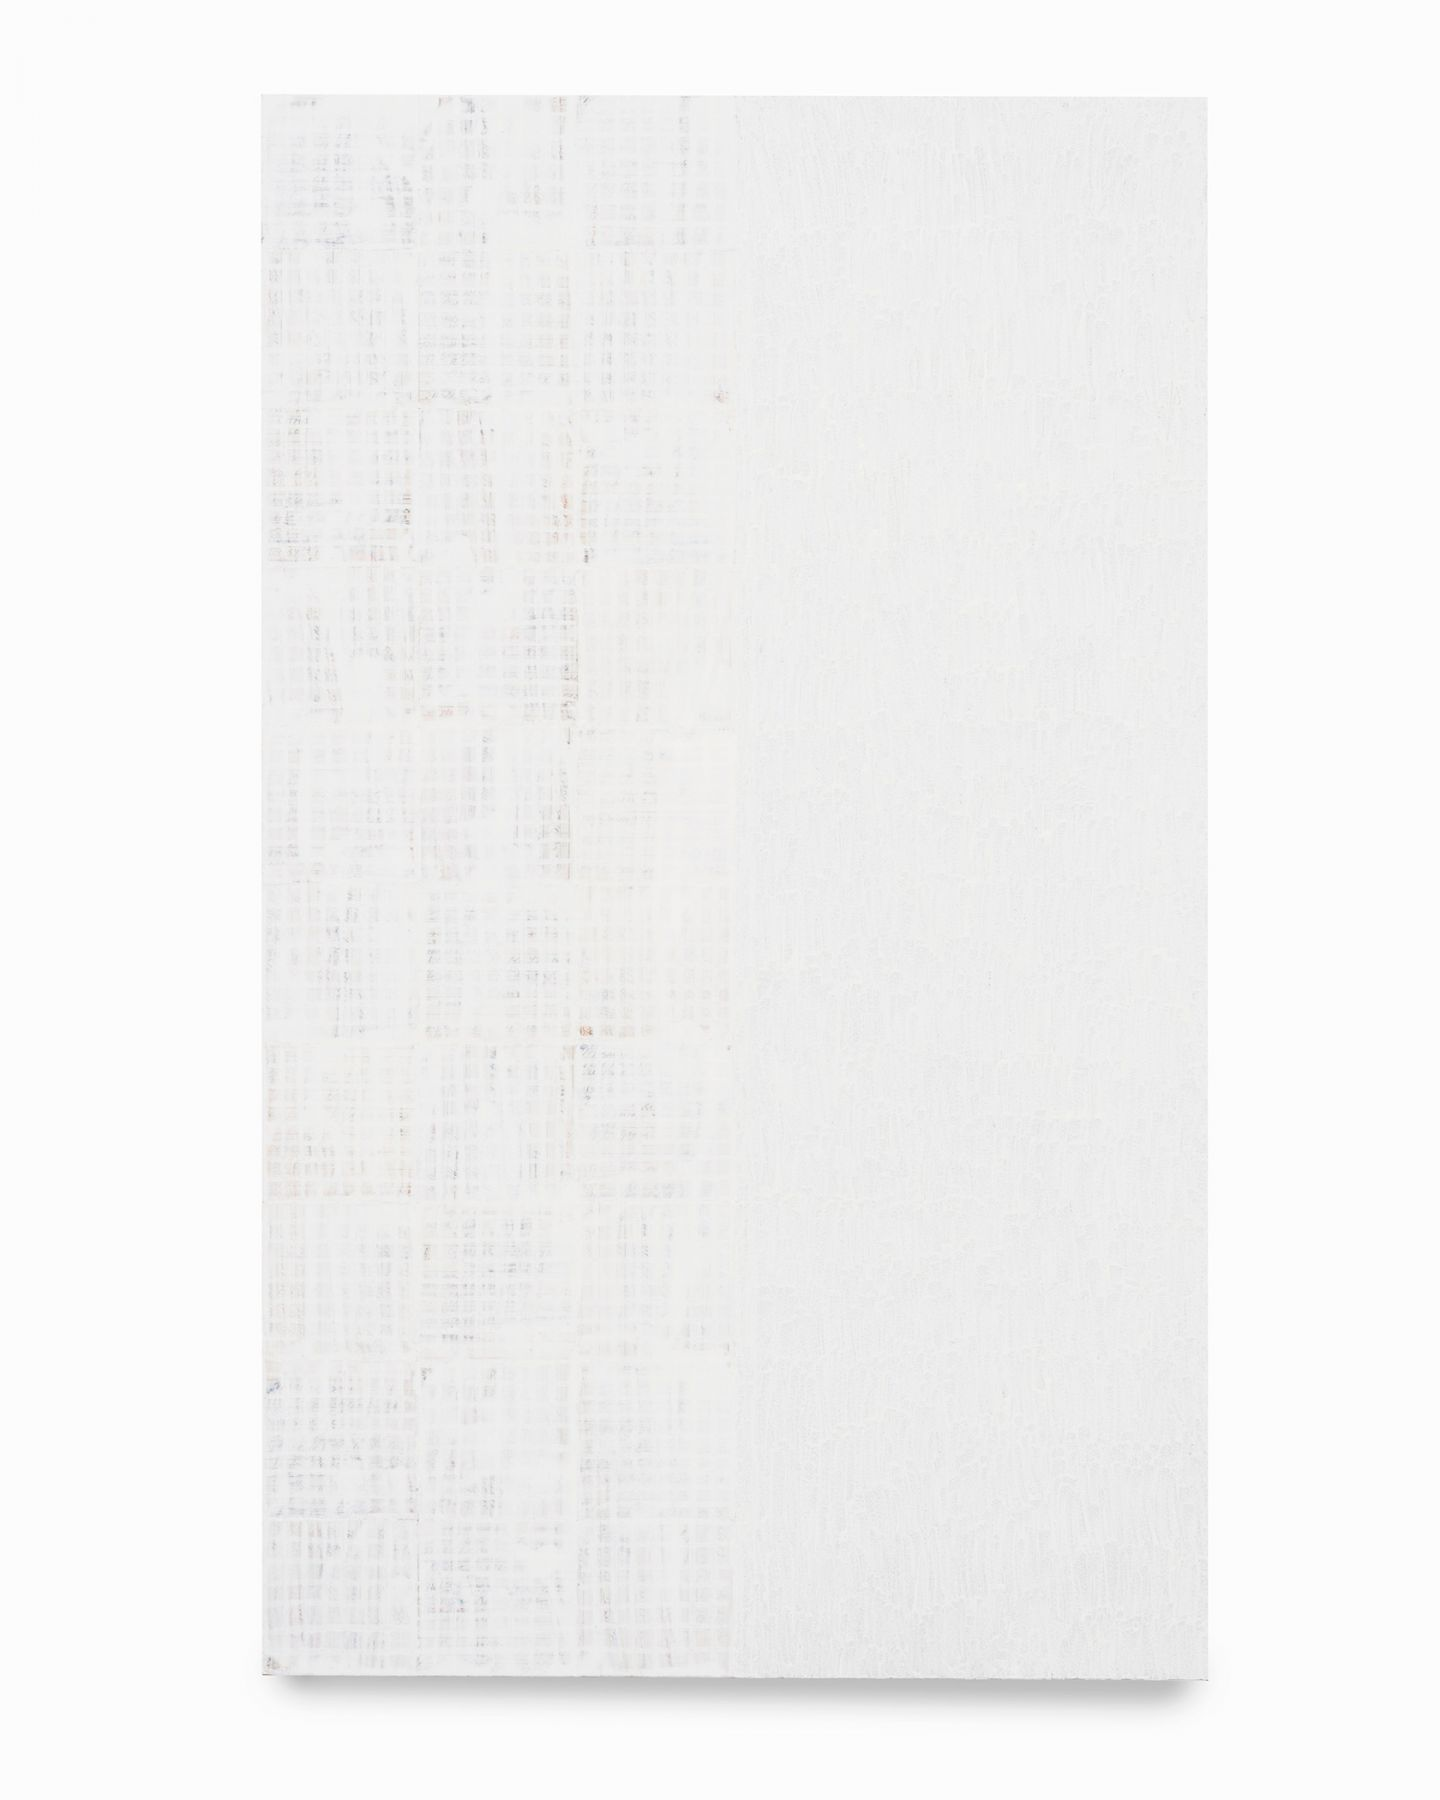 MCARTHUR BINION, white:work, 2019